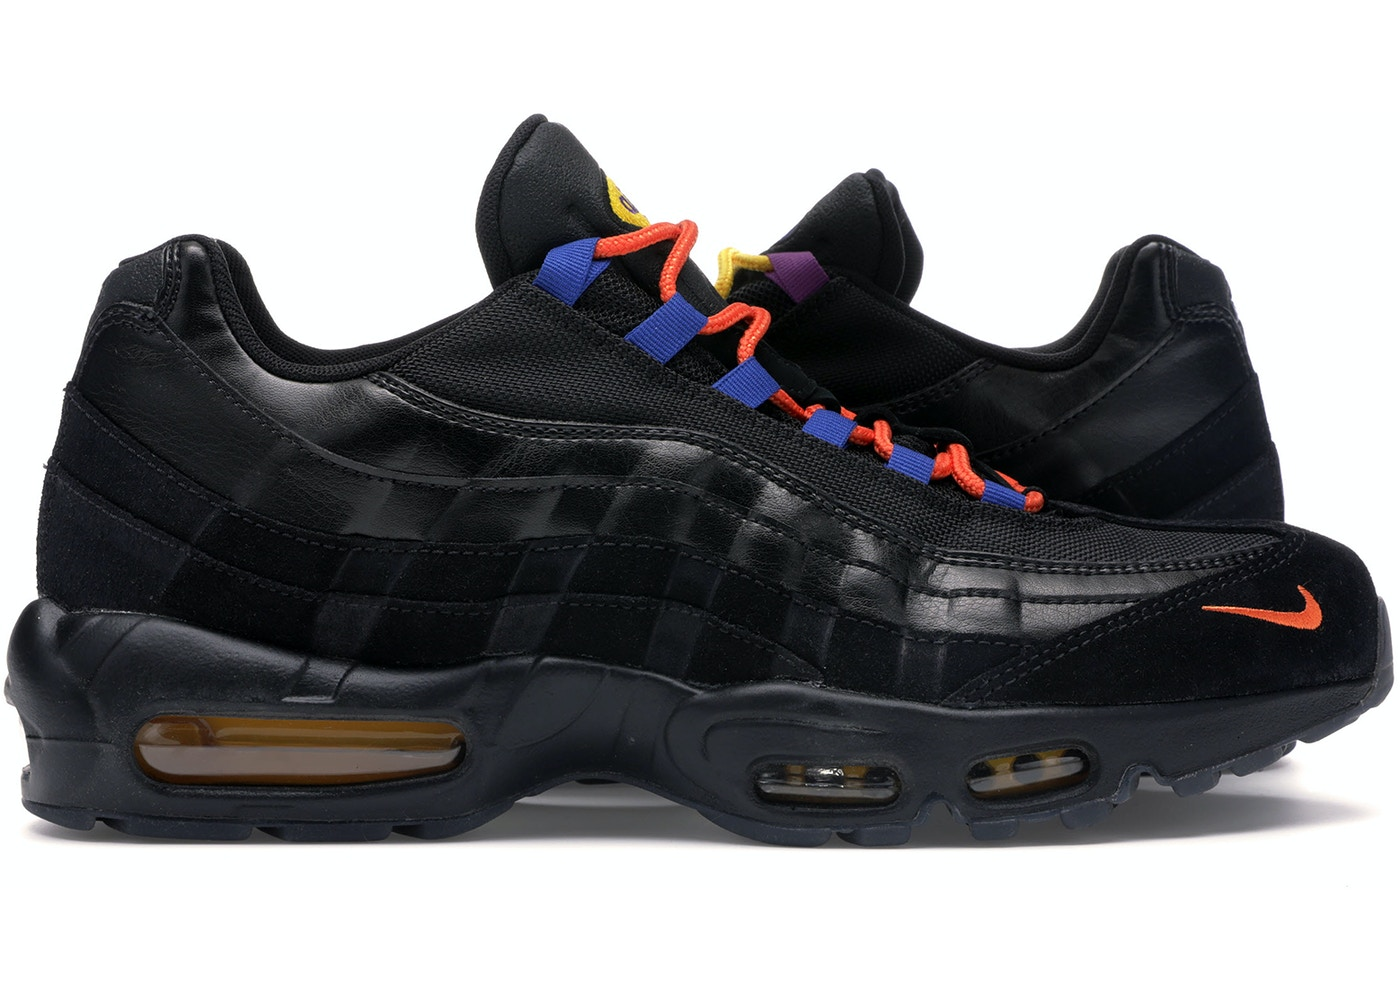 wholesale dealer 896c2 cd6a4 Buy Nike Air Max 95 Shoes & Deadstock Sneakers